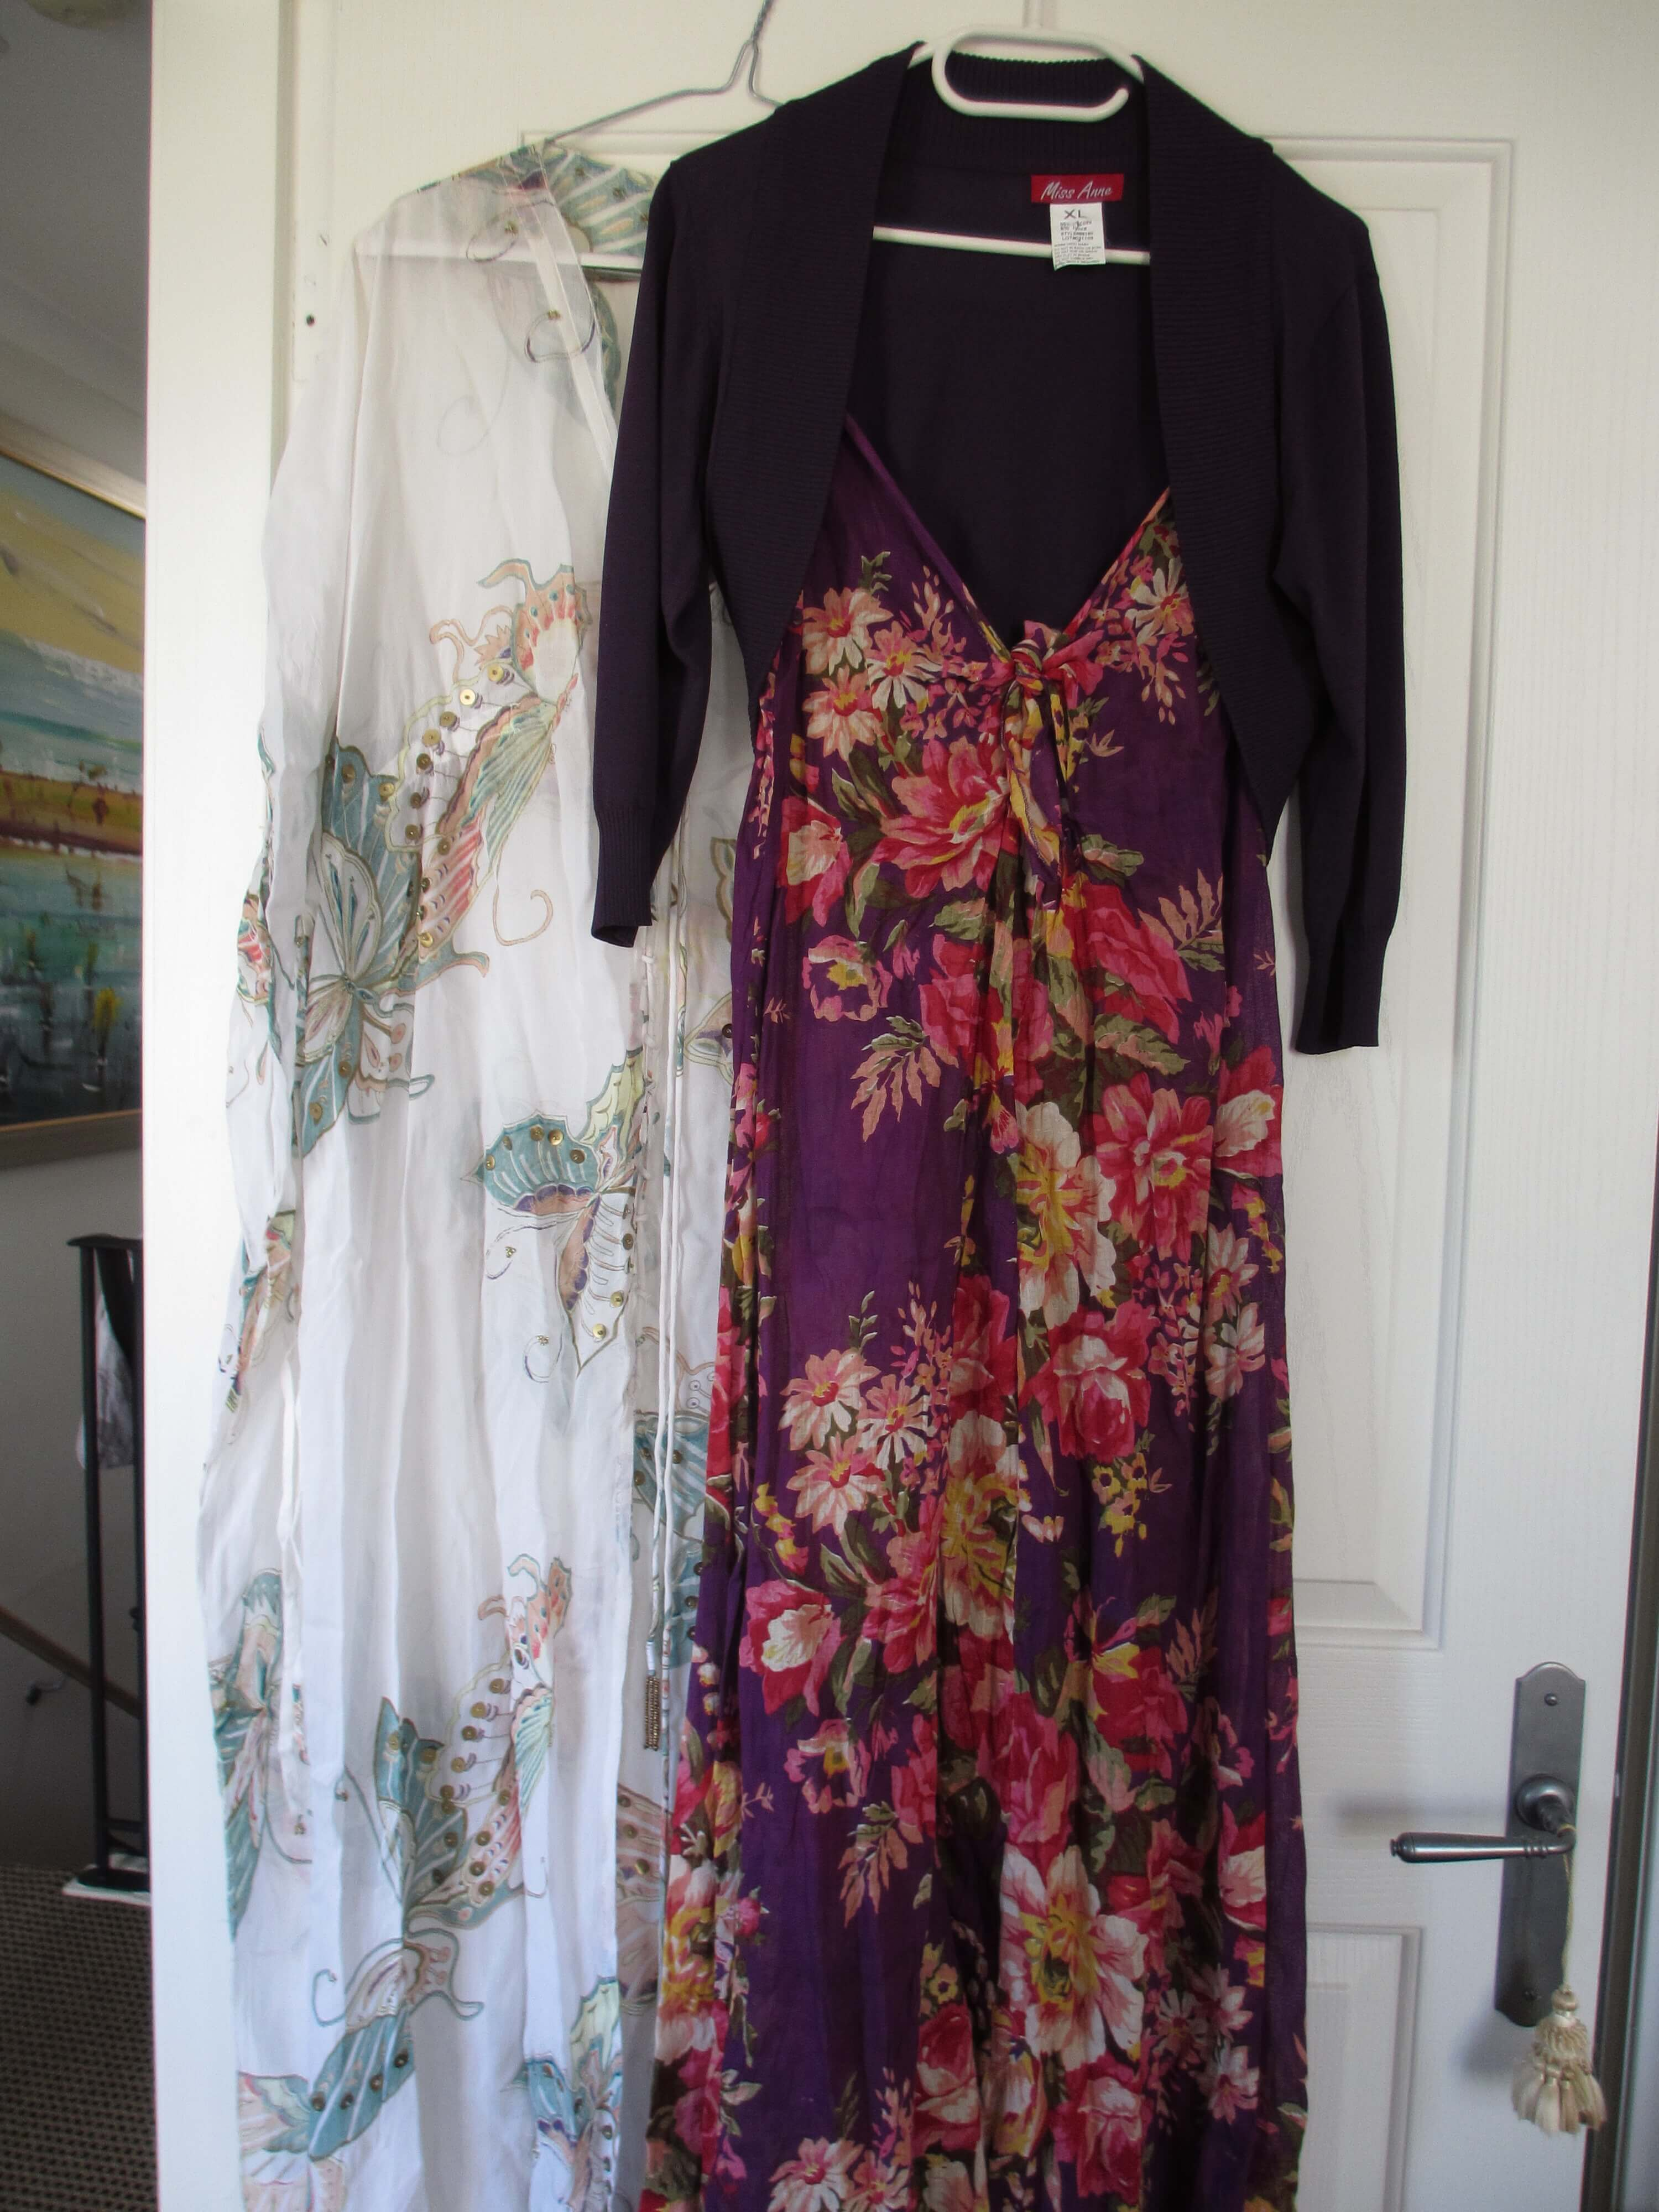 travel, travel tips, travel planning, two long dresses on hangers